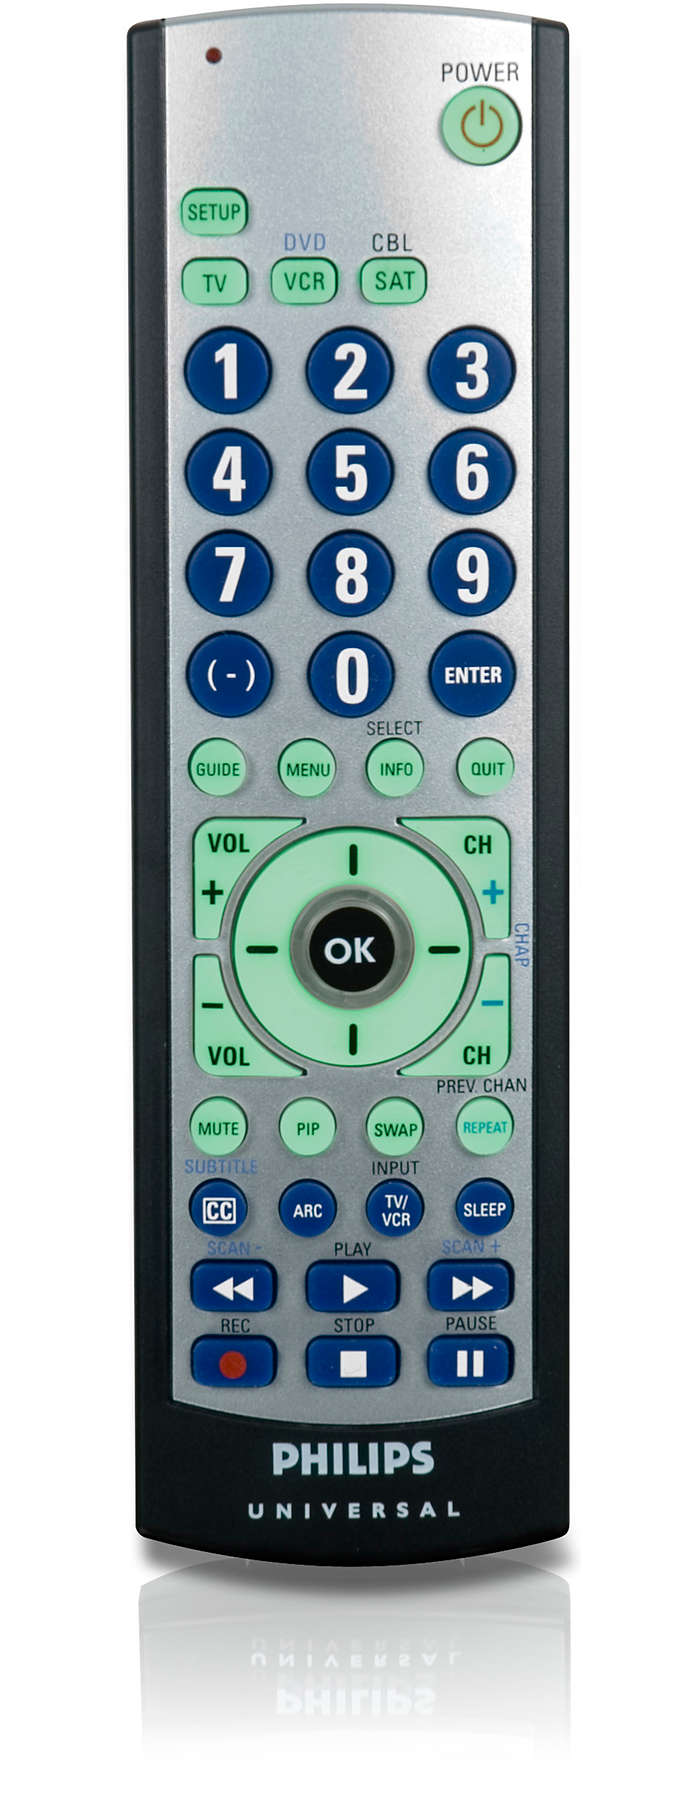 Perfect replacement for a lost or broken remote.